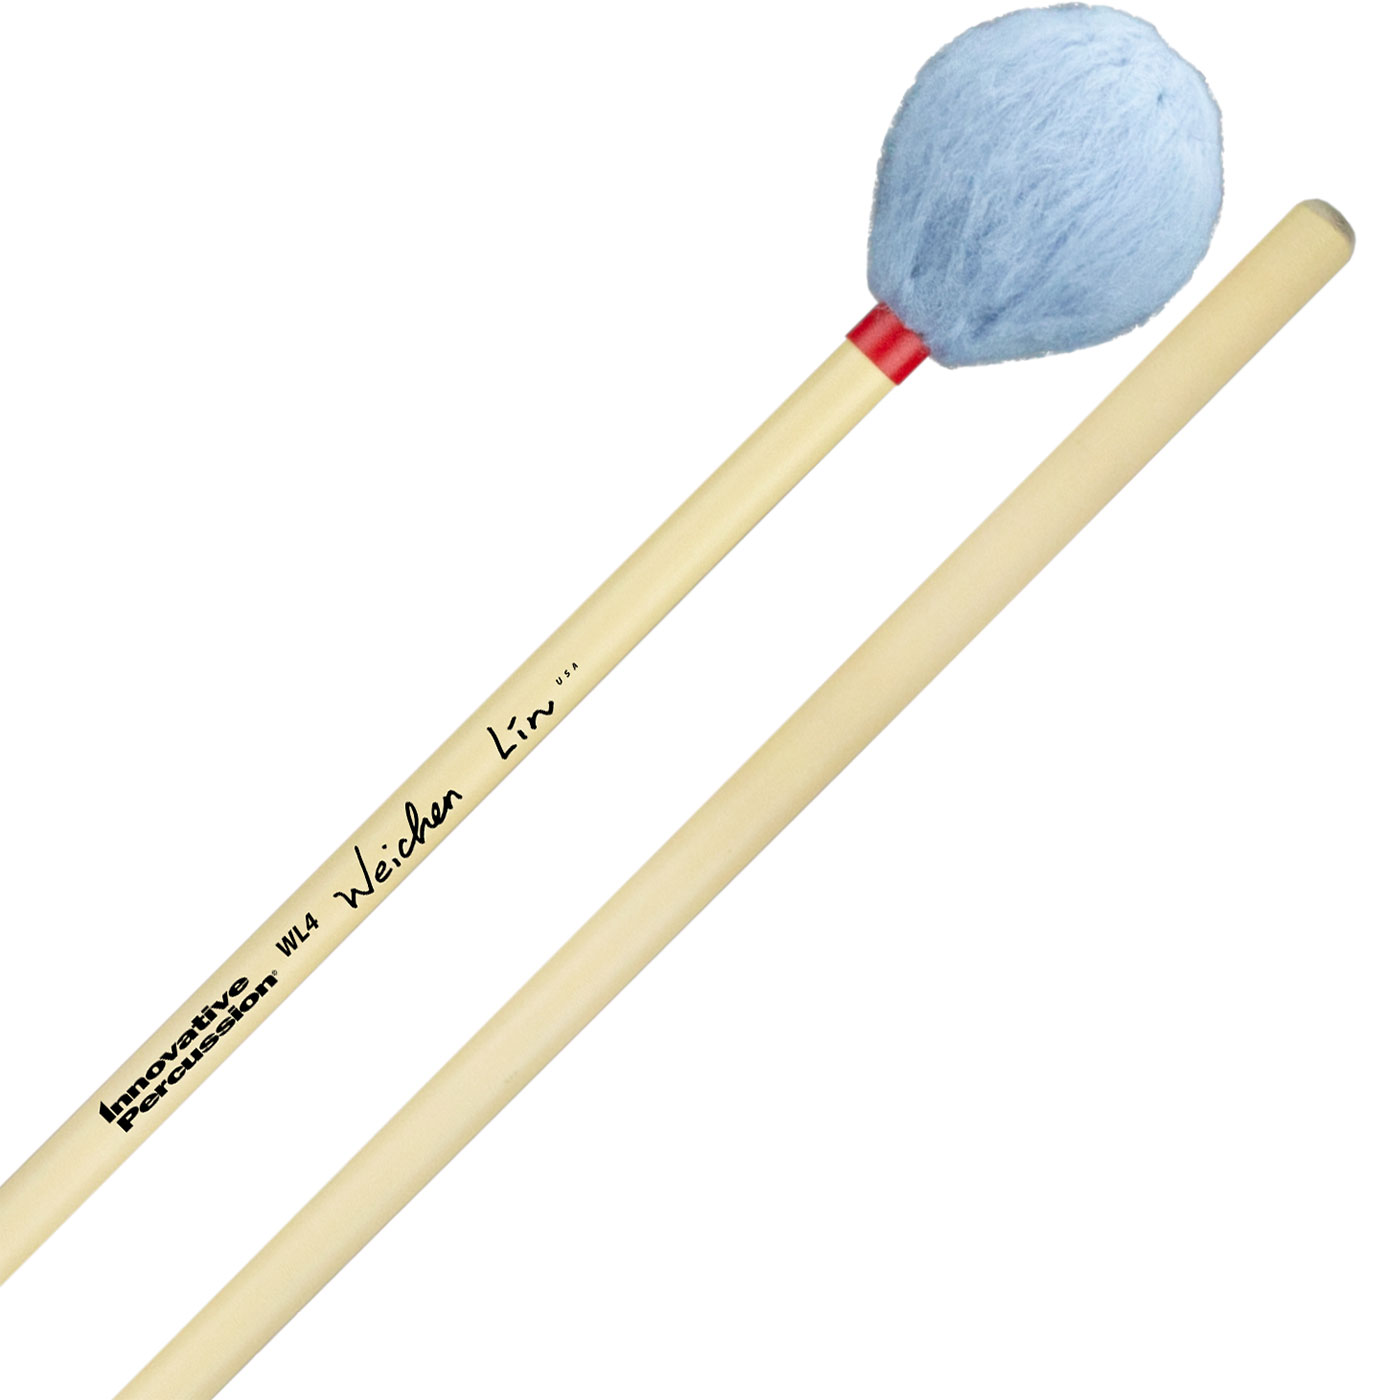 Innovative Percussion Wei-Chen Lin Signature Medium Marimba Mallets with Rattan Handles